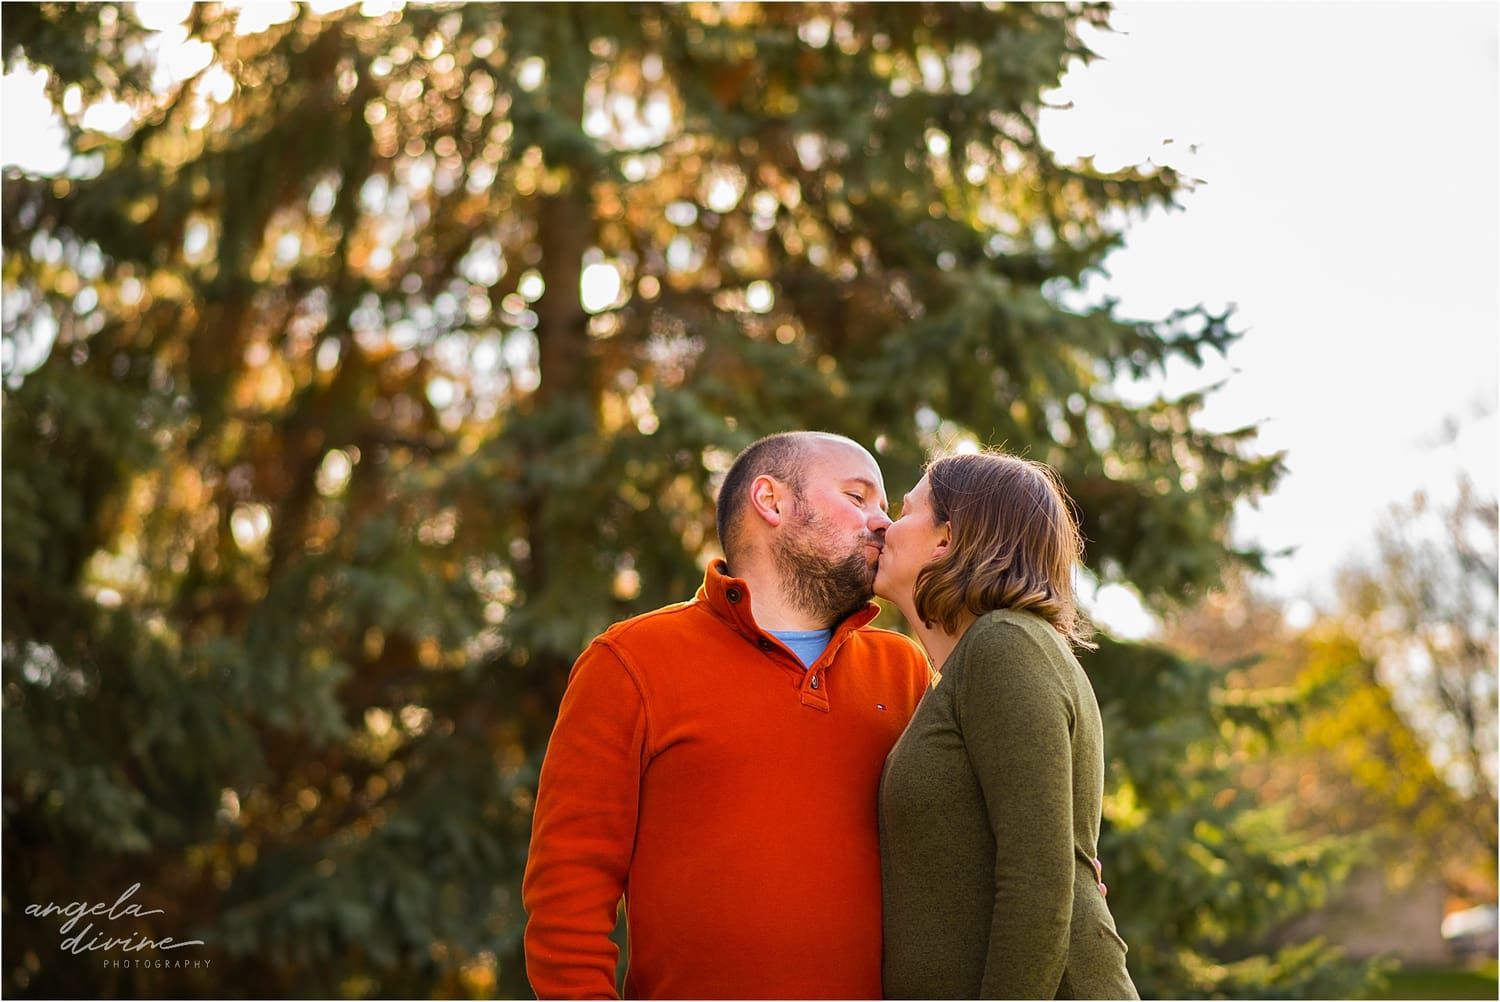 Apple Valley Family Session kiss